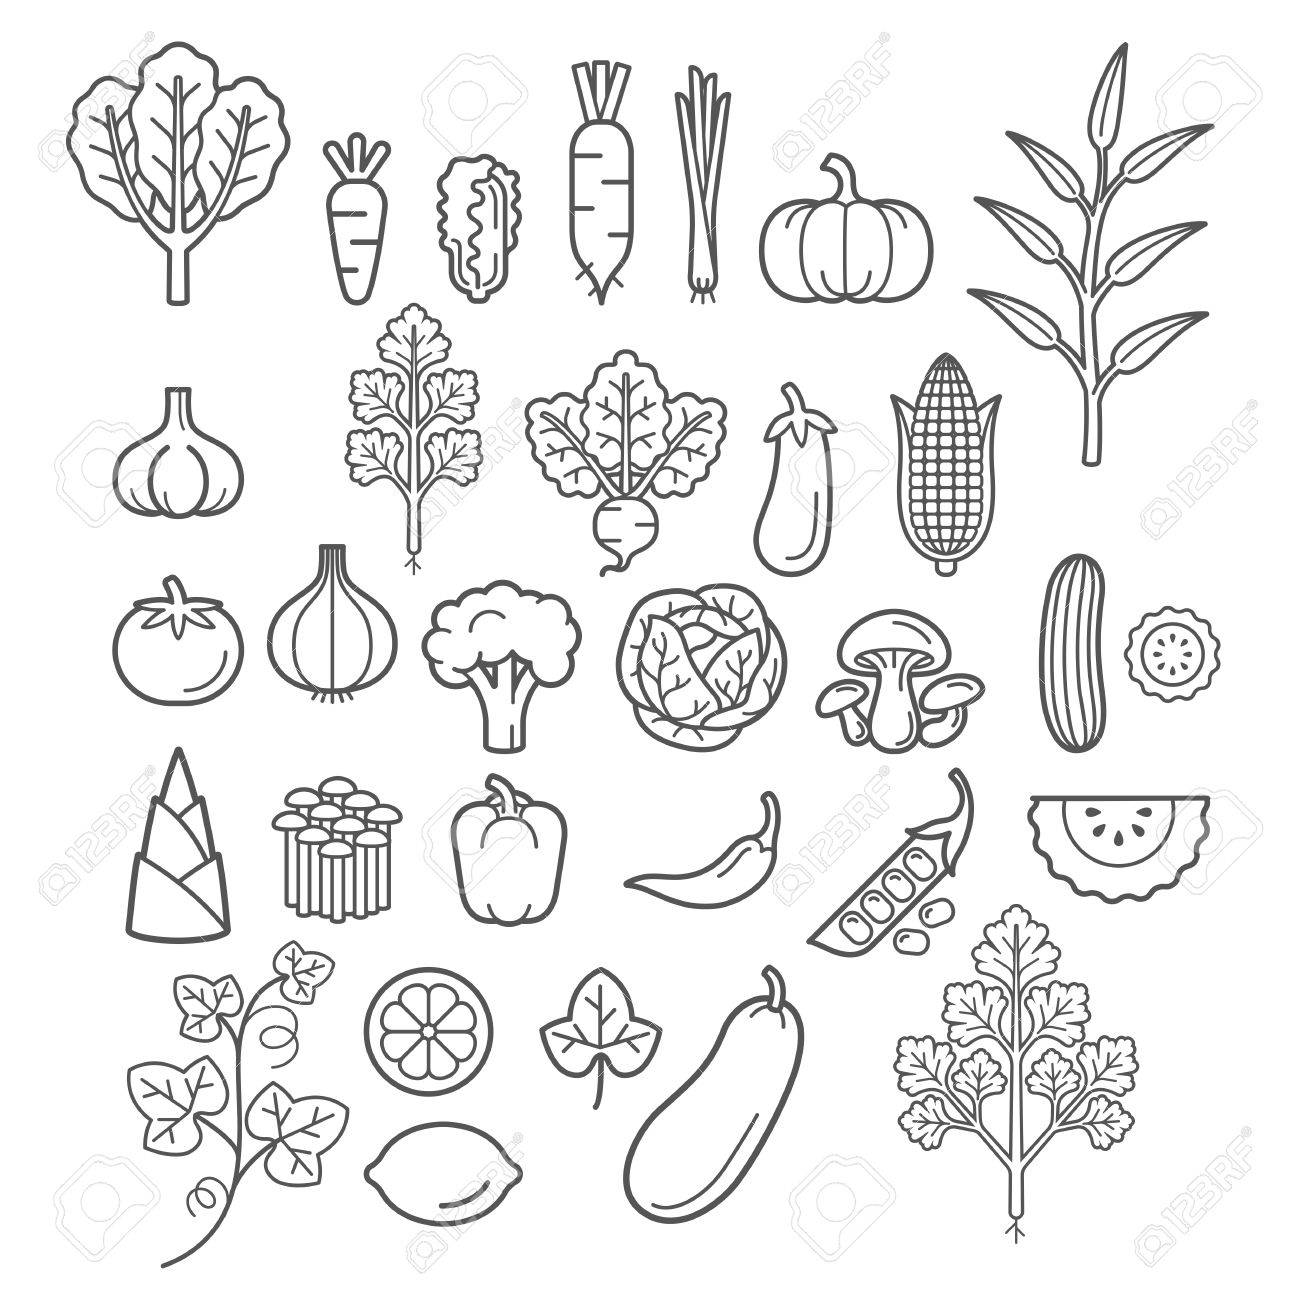 Vegetables icons. - 59069876